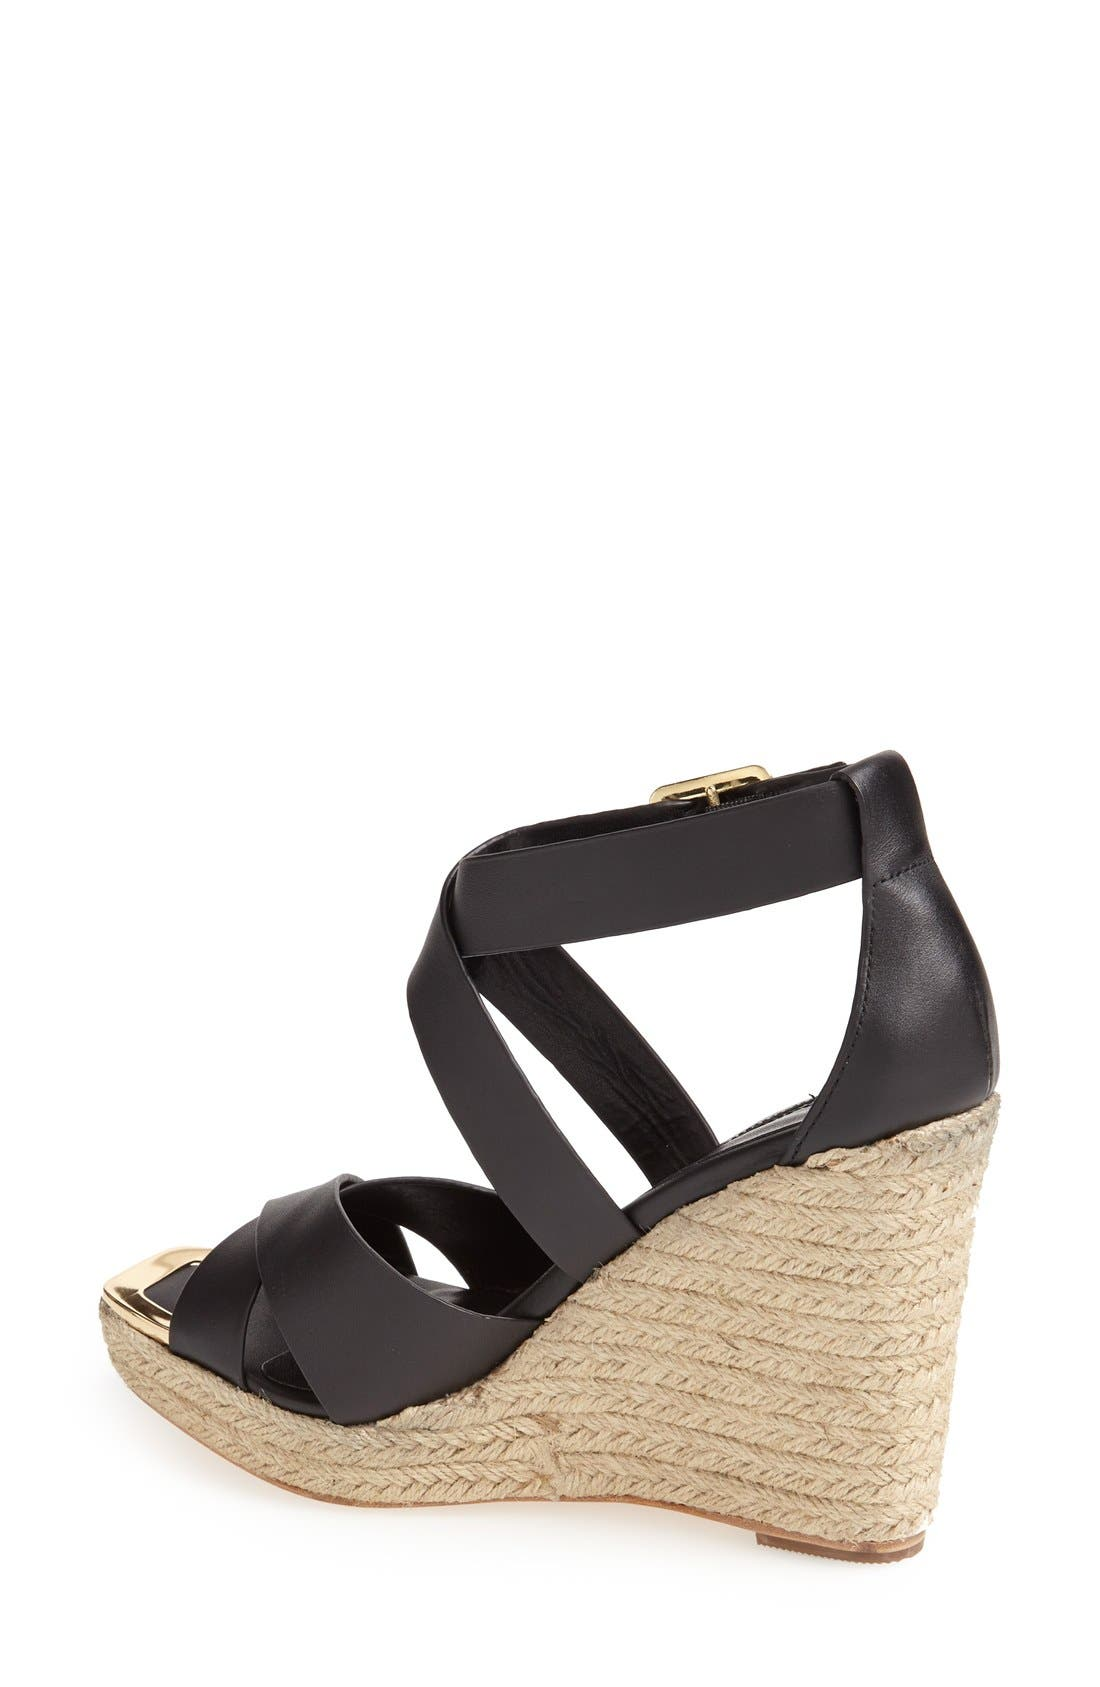 'Olympia' Wedge Sandal,                             Alternate thumbnail 4, color,                             001